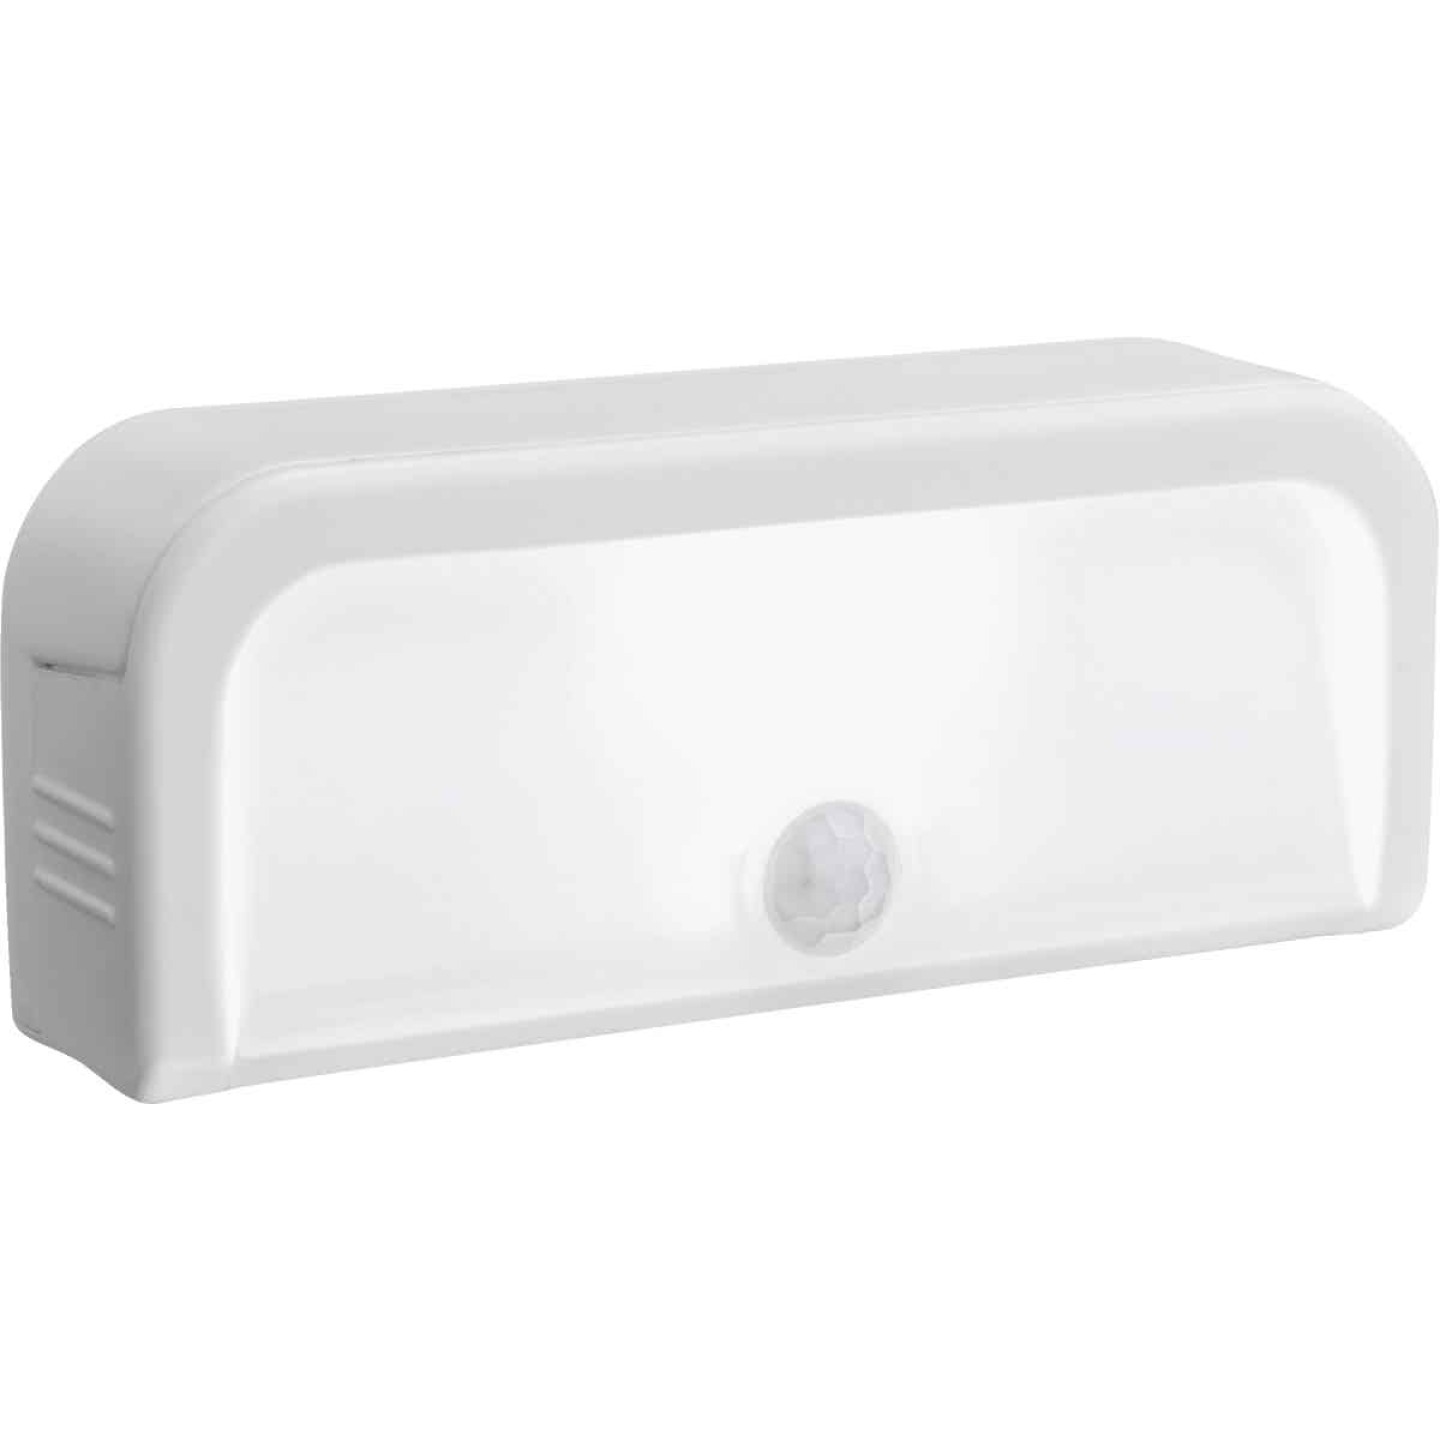 Mr. Beams White LED Battery Operated Light Image 3